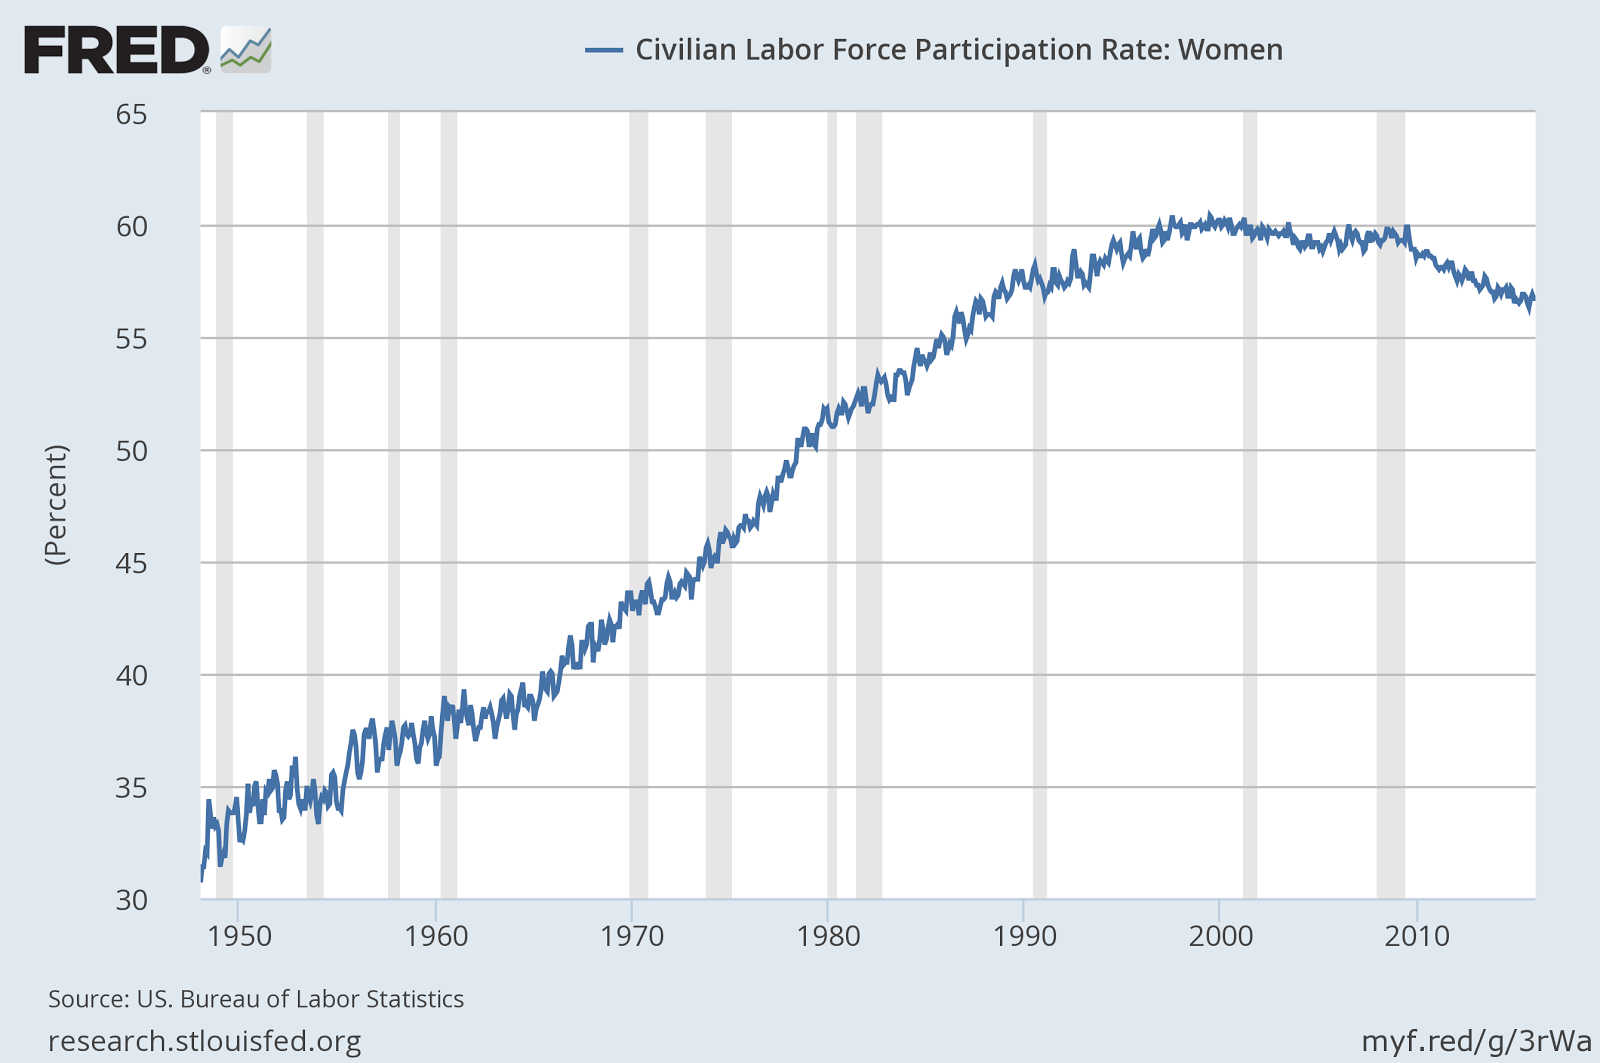 a research on the female participation in the labor force For policy makers, women's labor force participation and the quality of women's labor market opportunities are dual objectives, both important for economic growth.